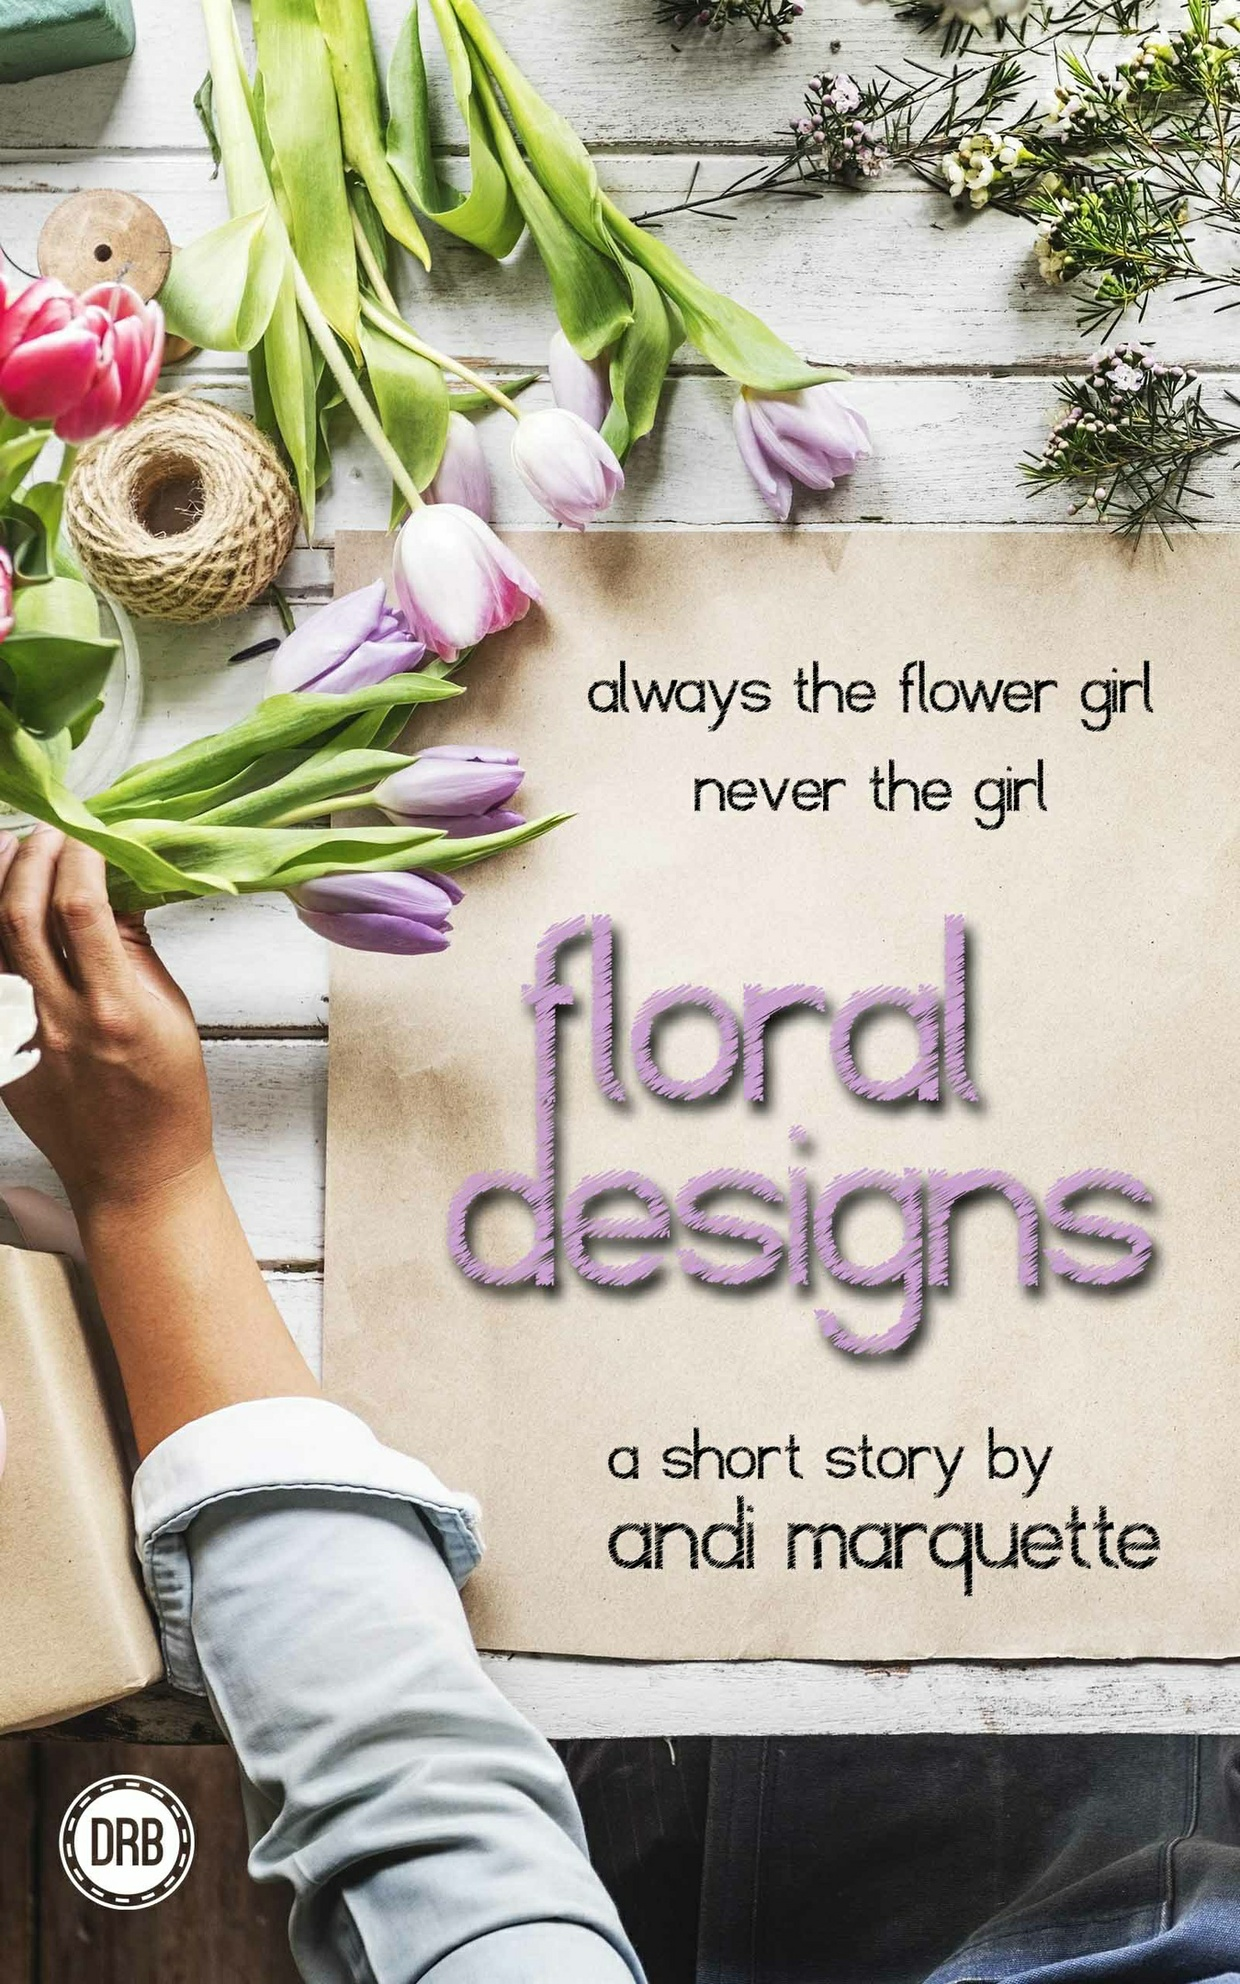 Floral Designs by Andi Marquette (epub)